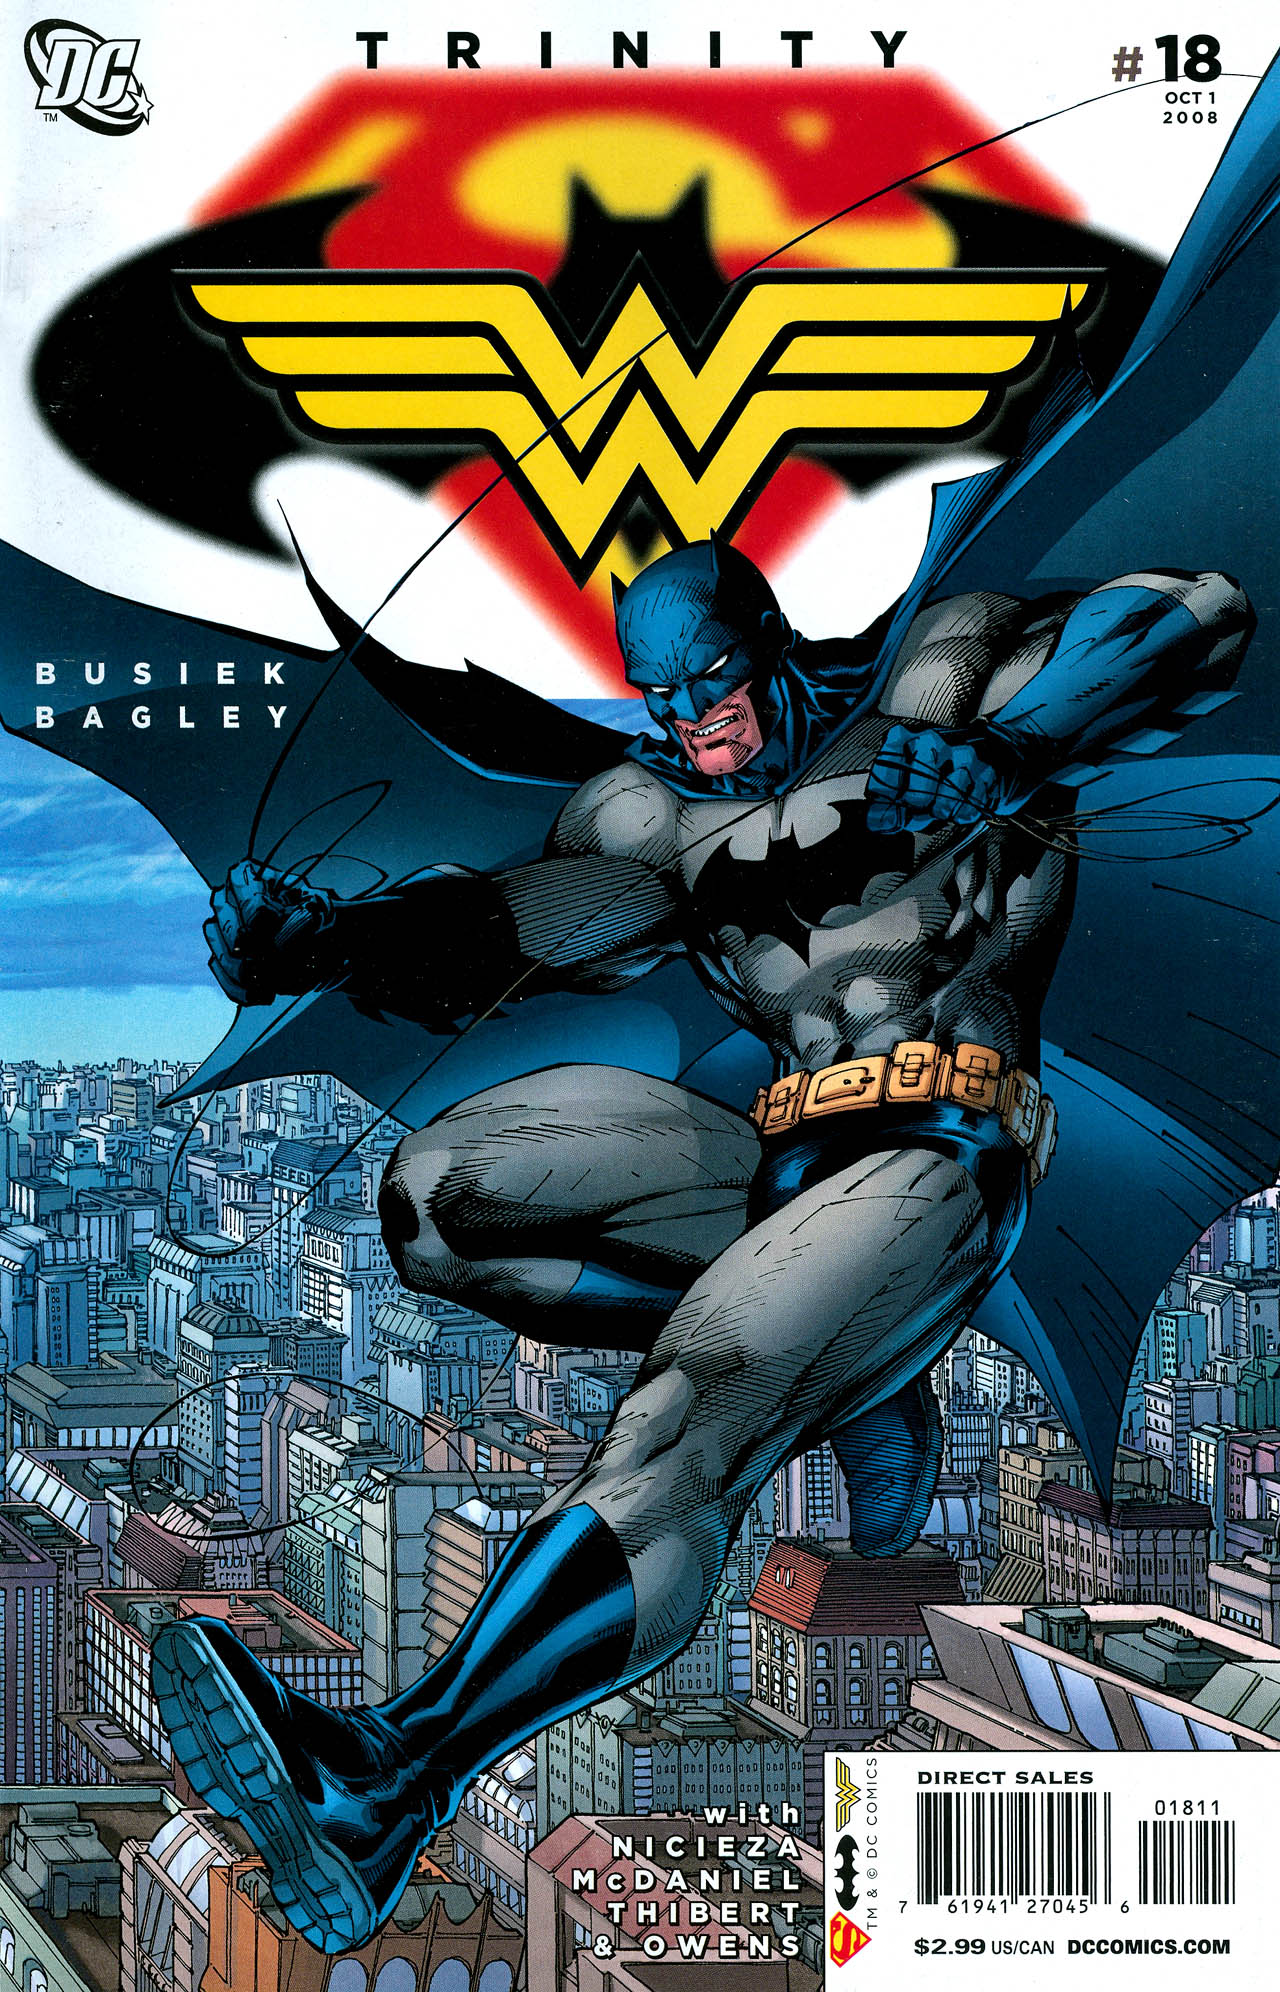 Read online Trinity (2008) comic -  Issue #18 - 1